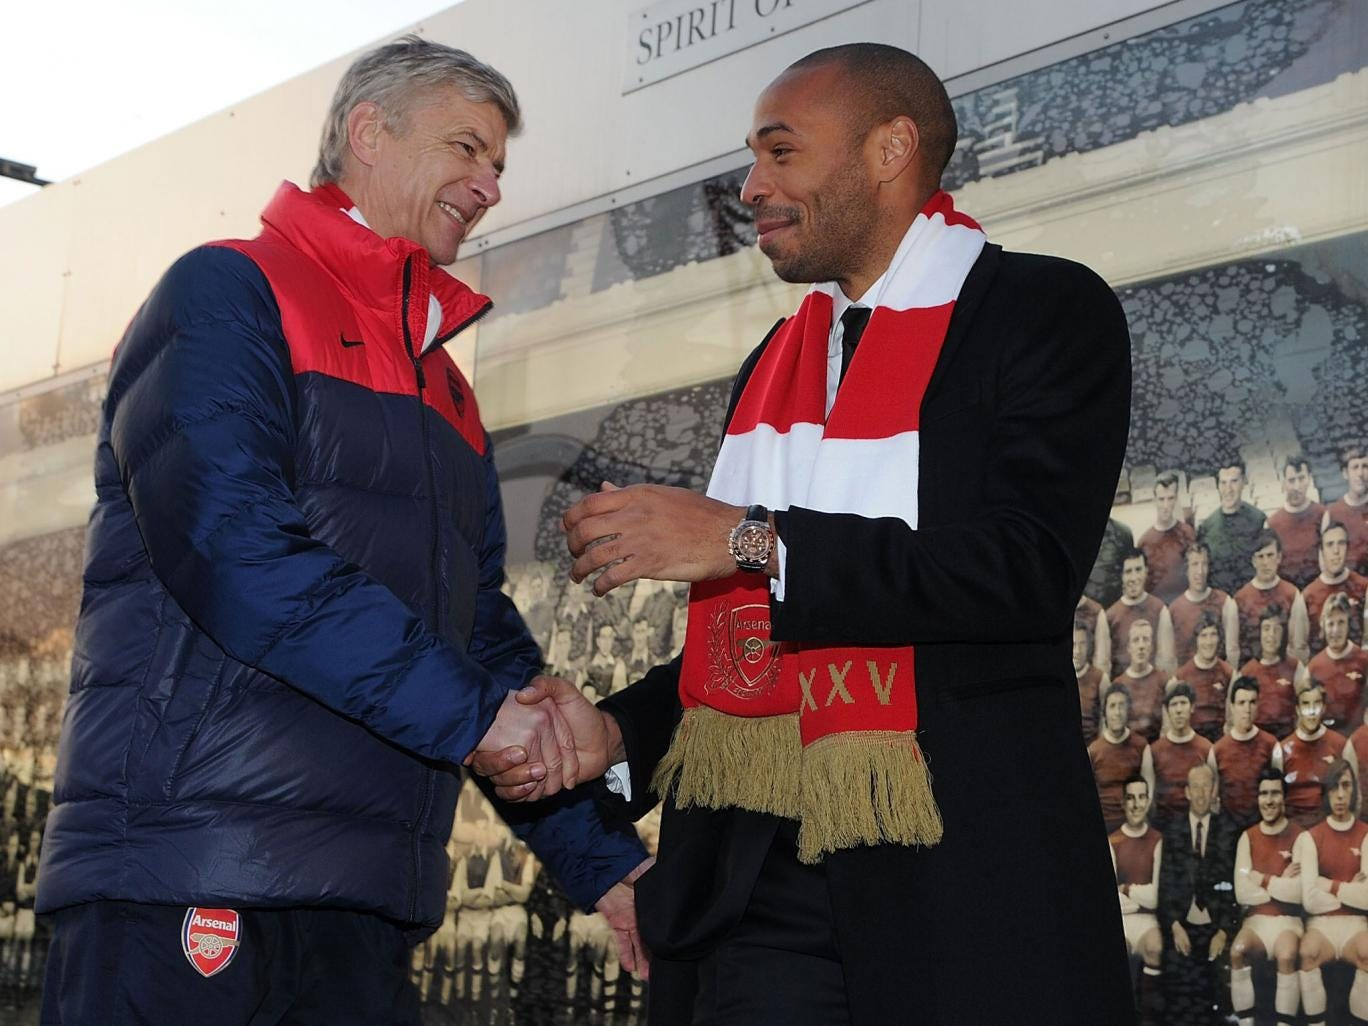 Thierry Henry should adopt an ambassadorial role at Arsenal like Patrick Vieira's at Manchester City, Alisher Usmanov believes